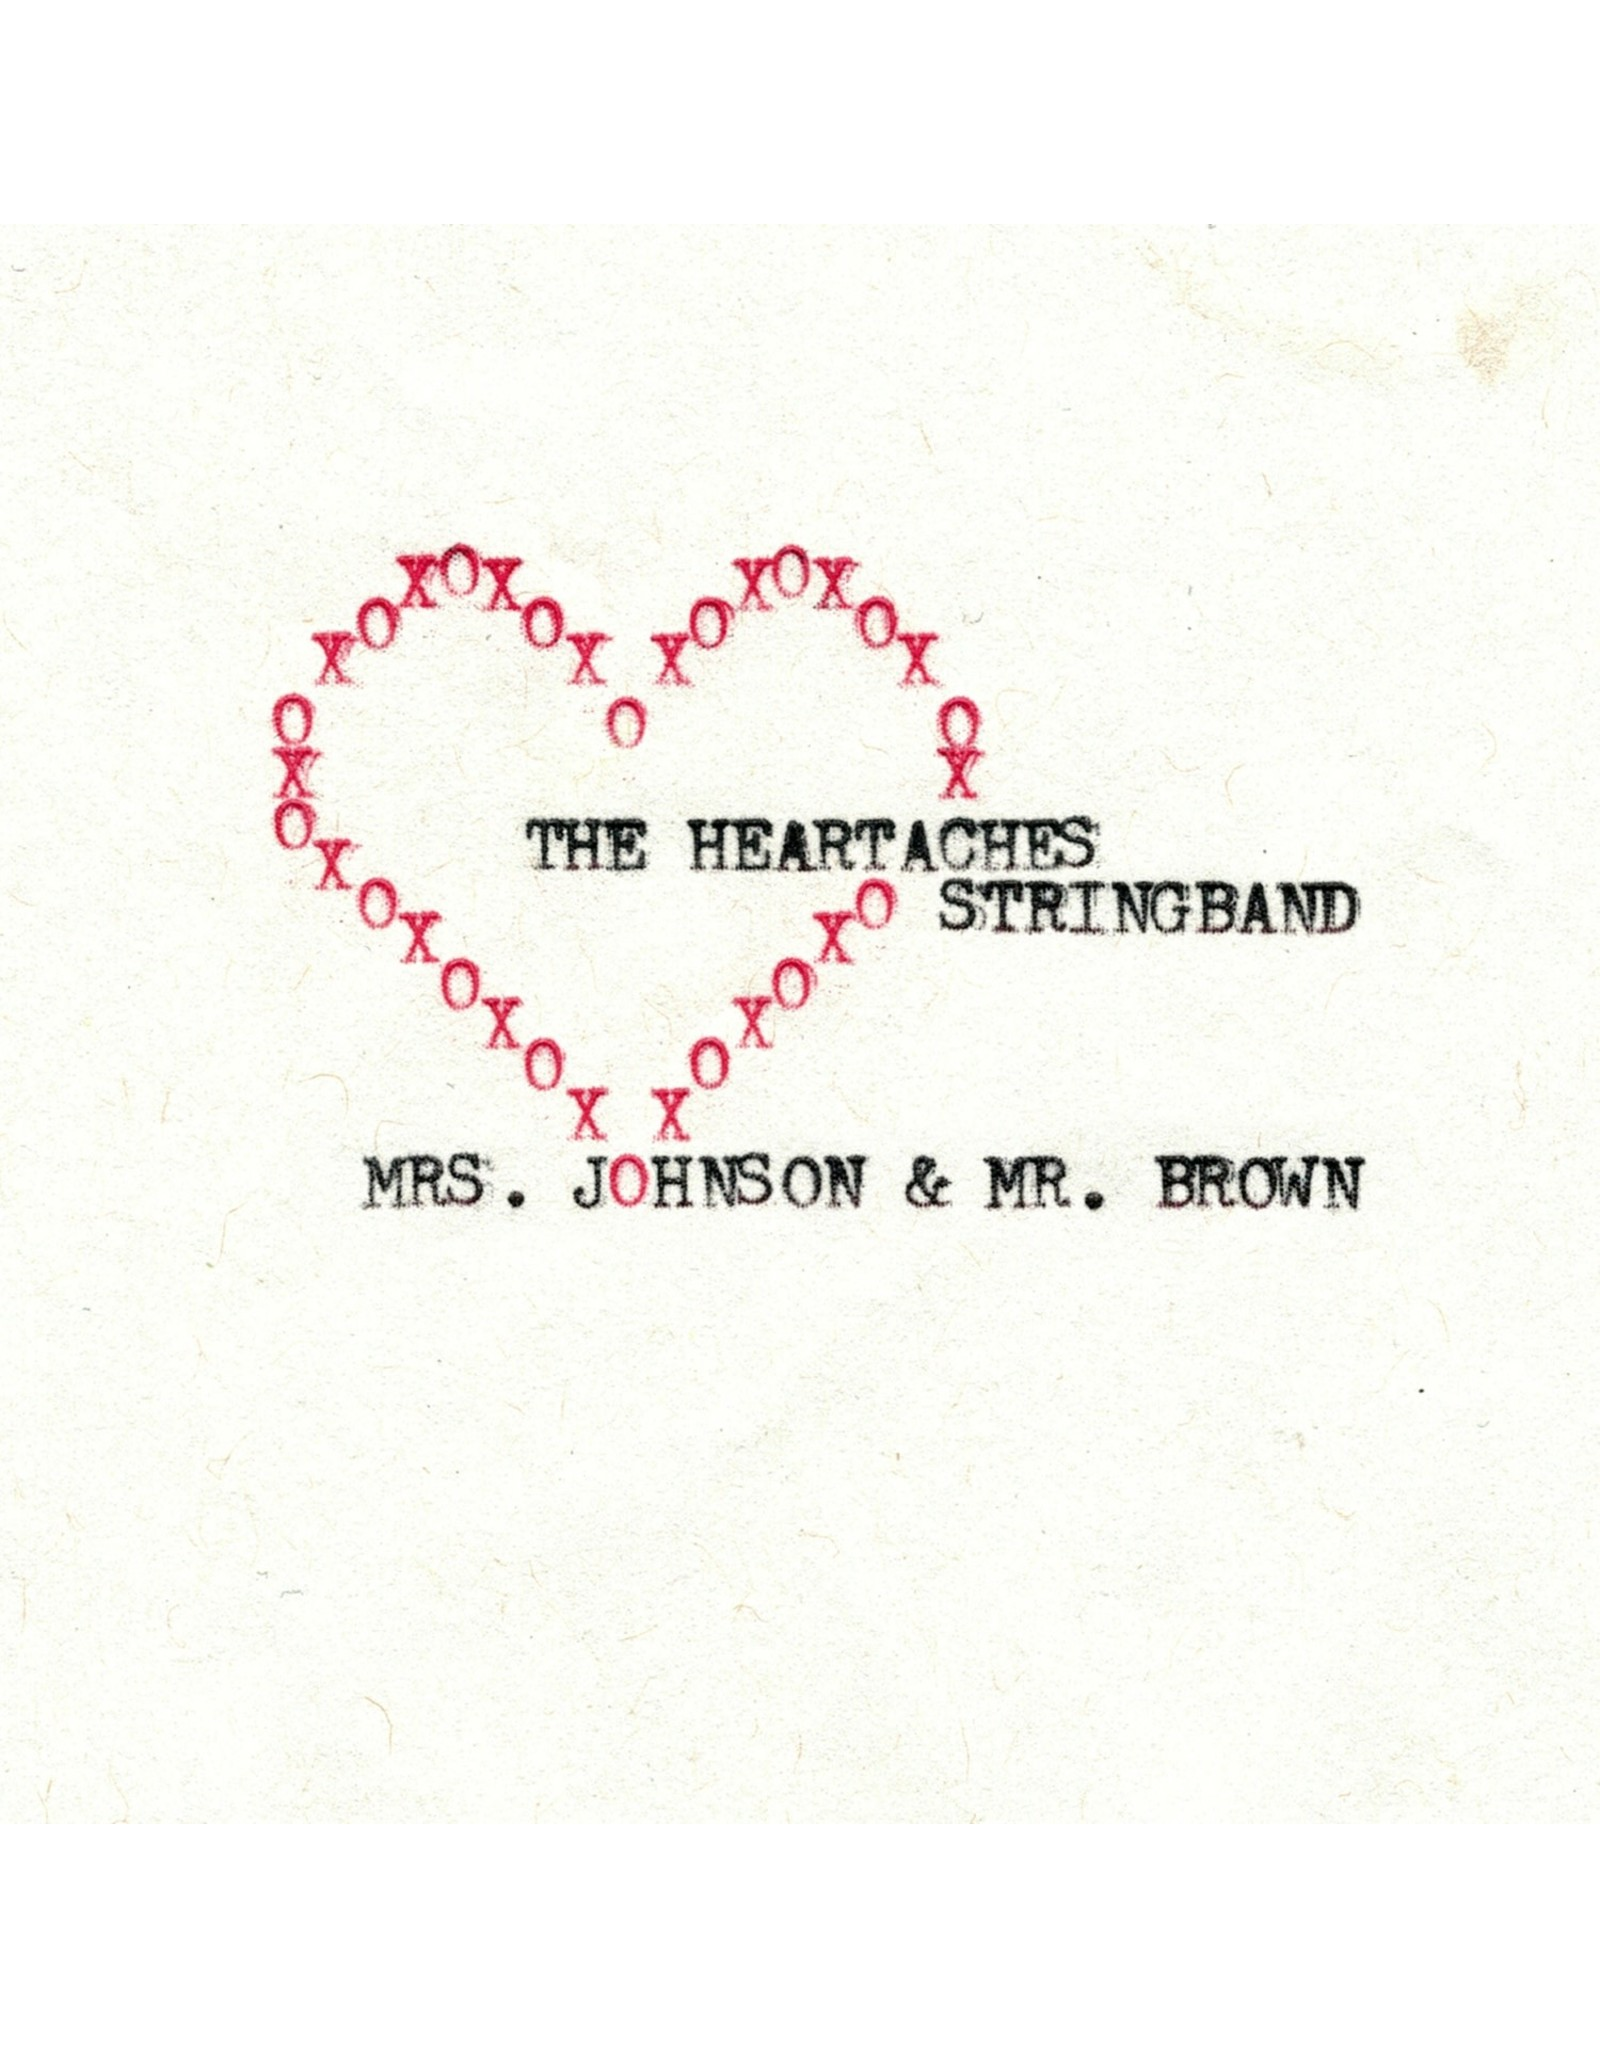 Heartaches String Band, The - Mrs. Johnson & Mr. Brown CD